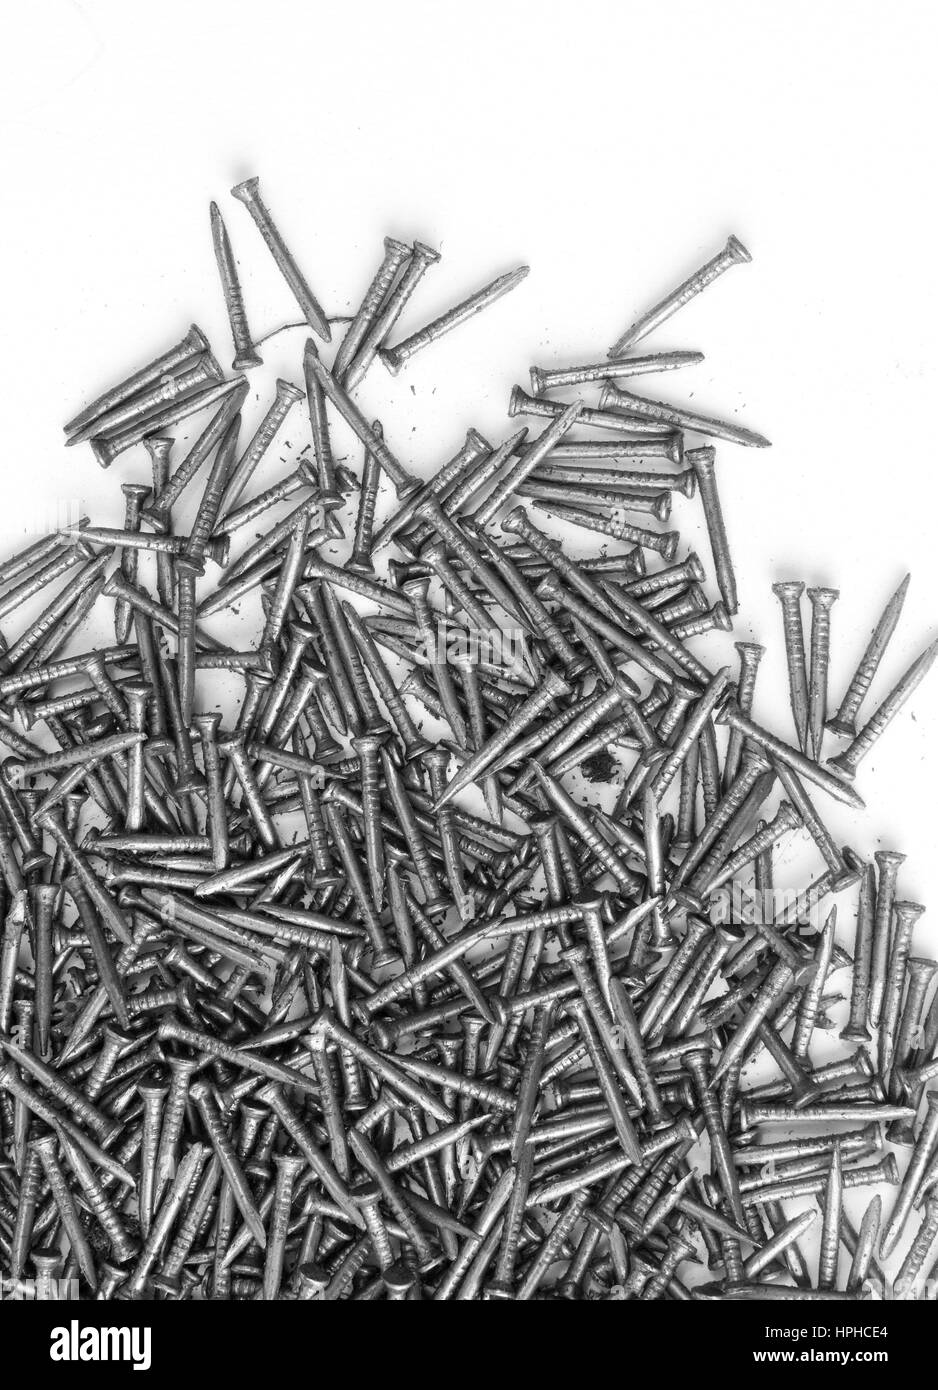 steel nails - Stock Image